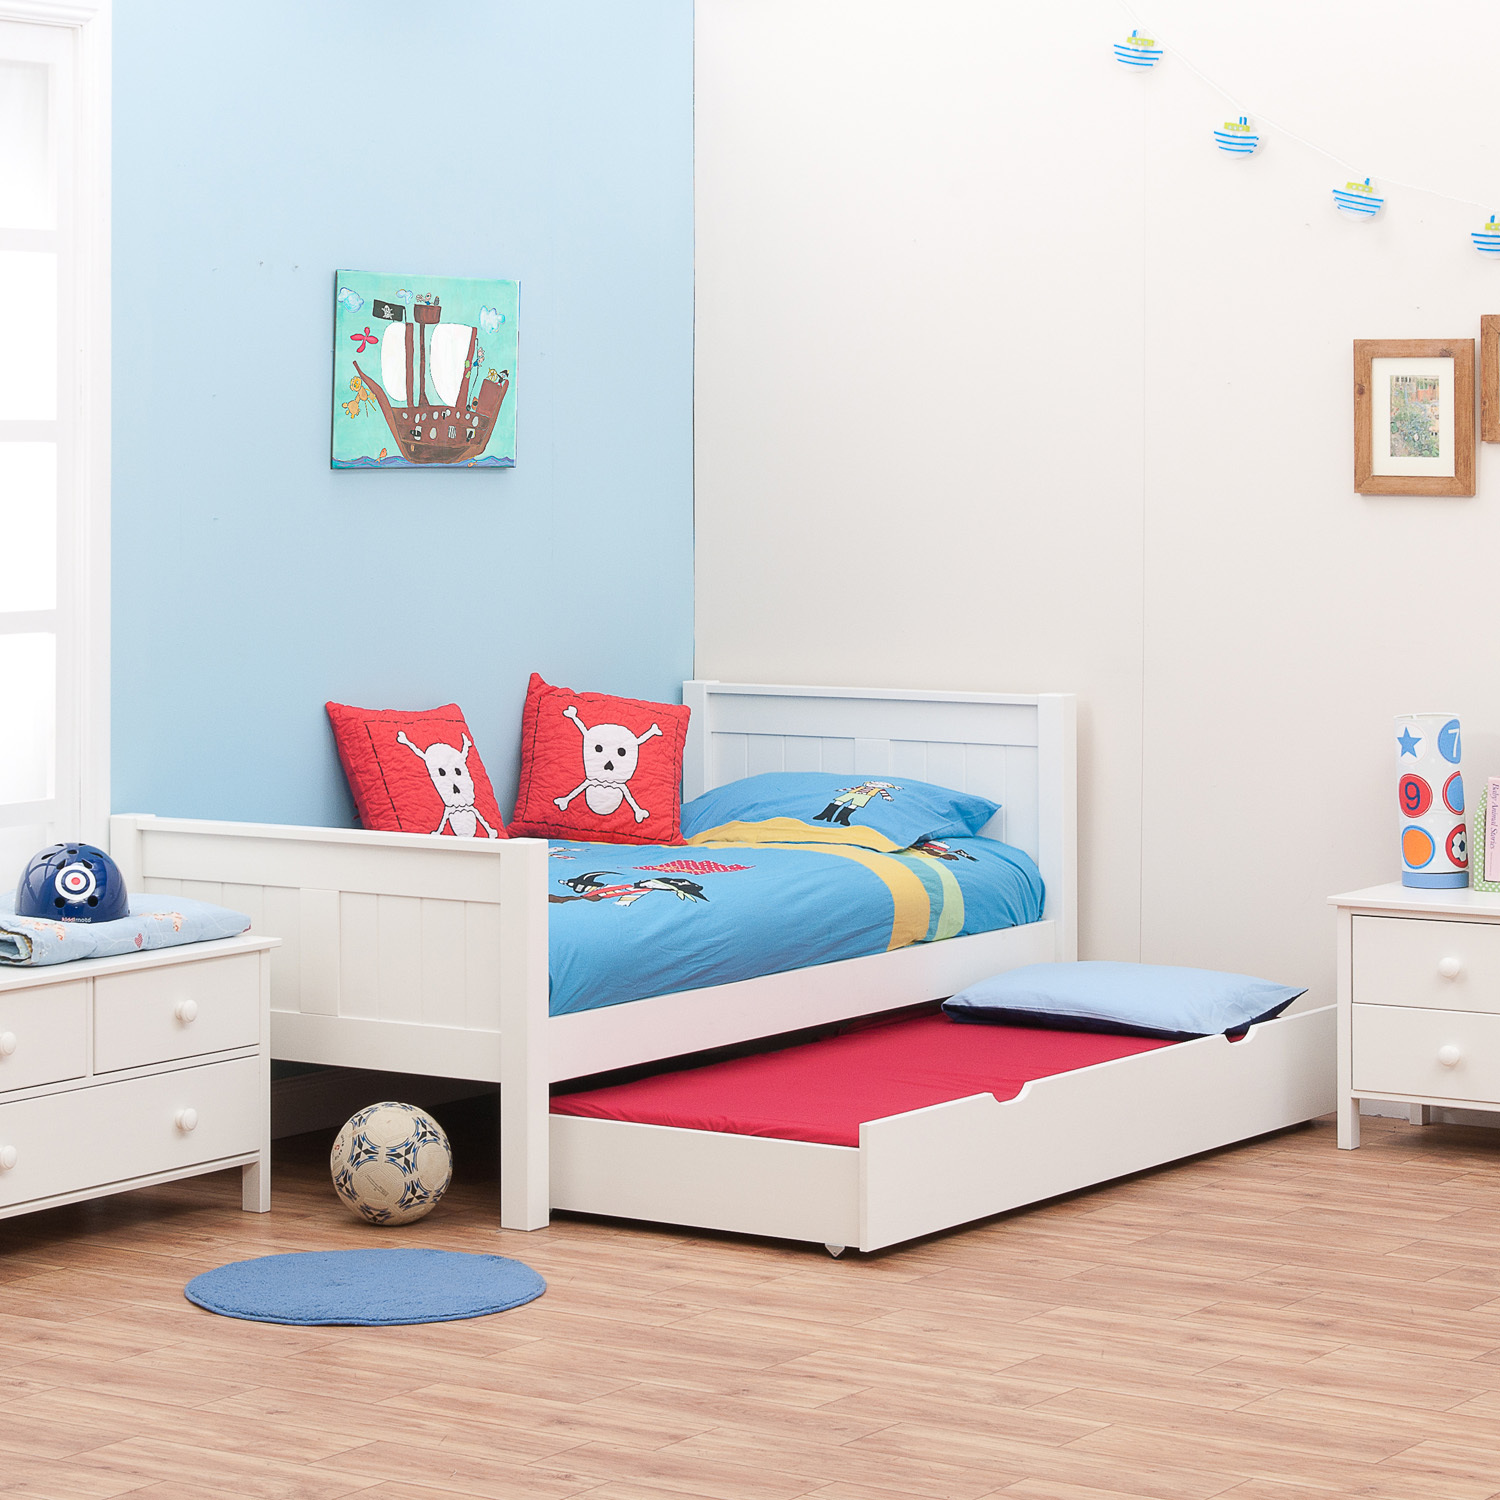 Classic single bed with trundle bed by stompa for Kids bed design